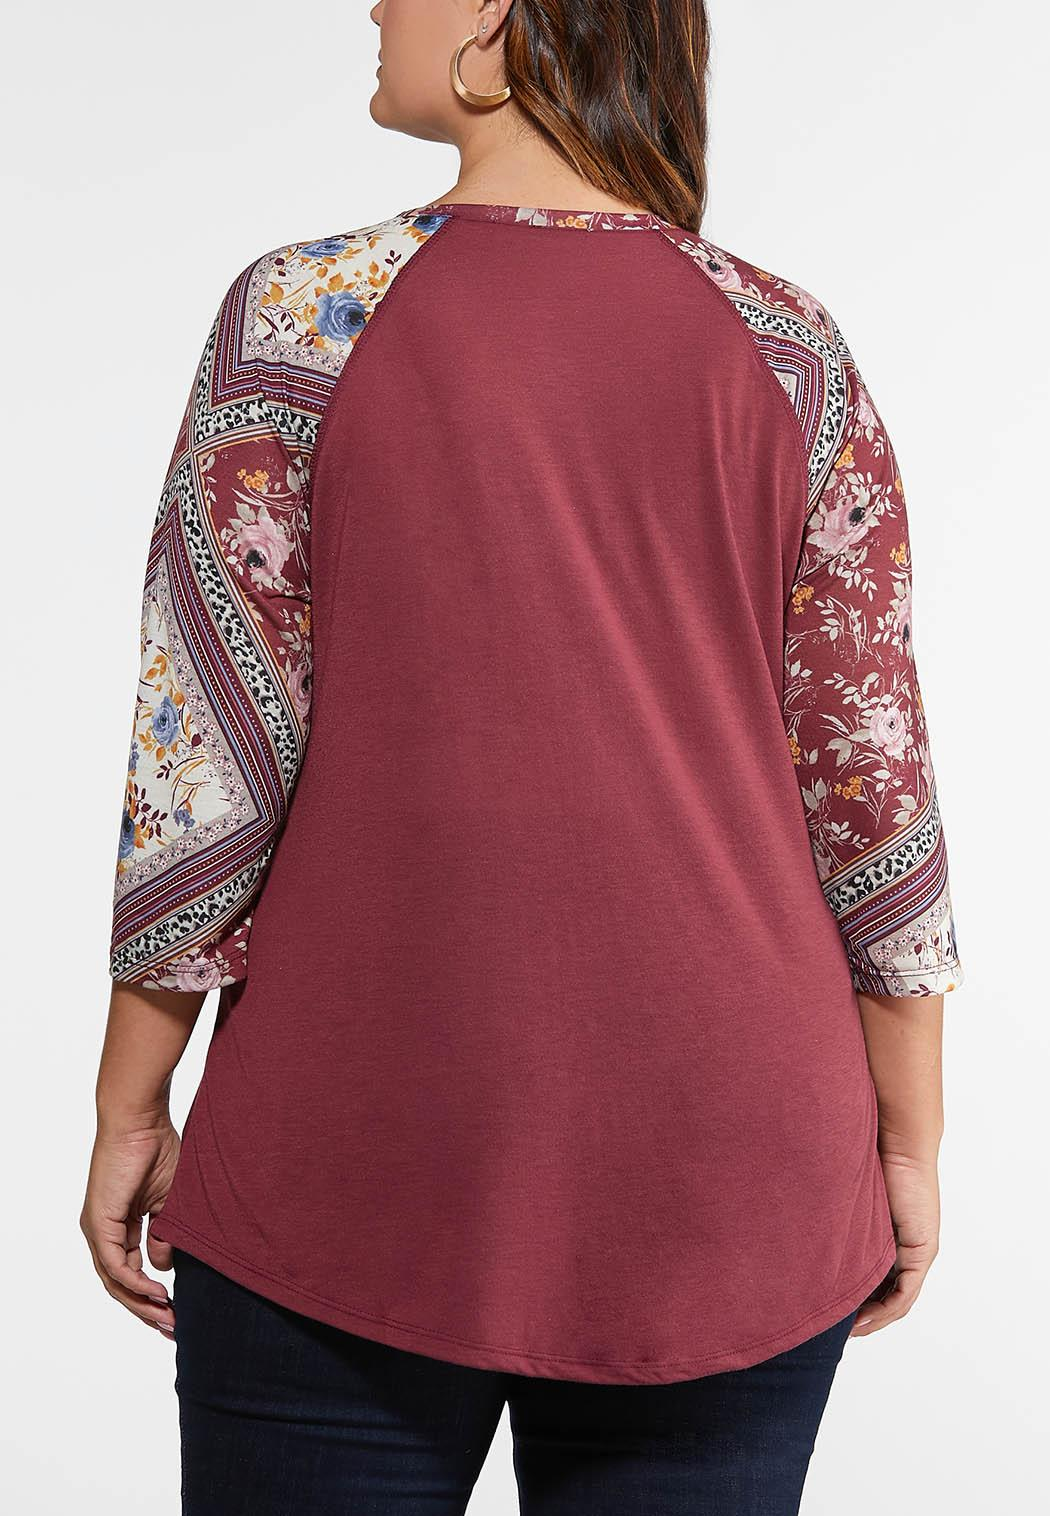 Plus Size Knotted Burgundy Floral Top (Item #44108608)